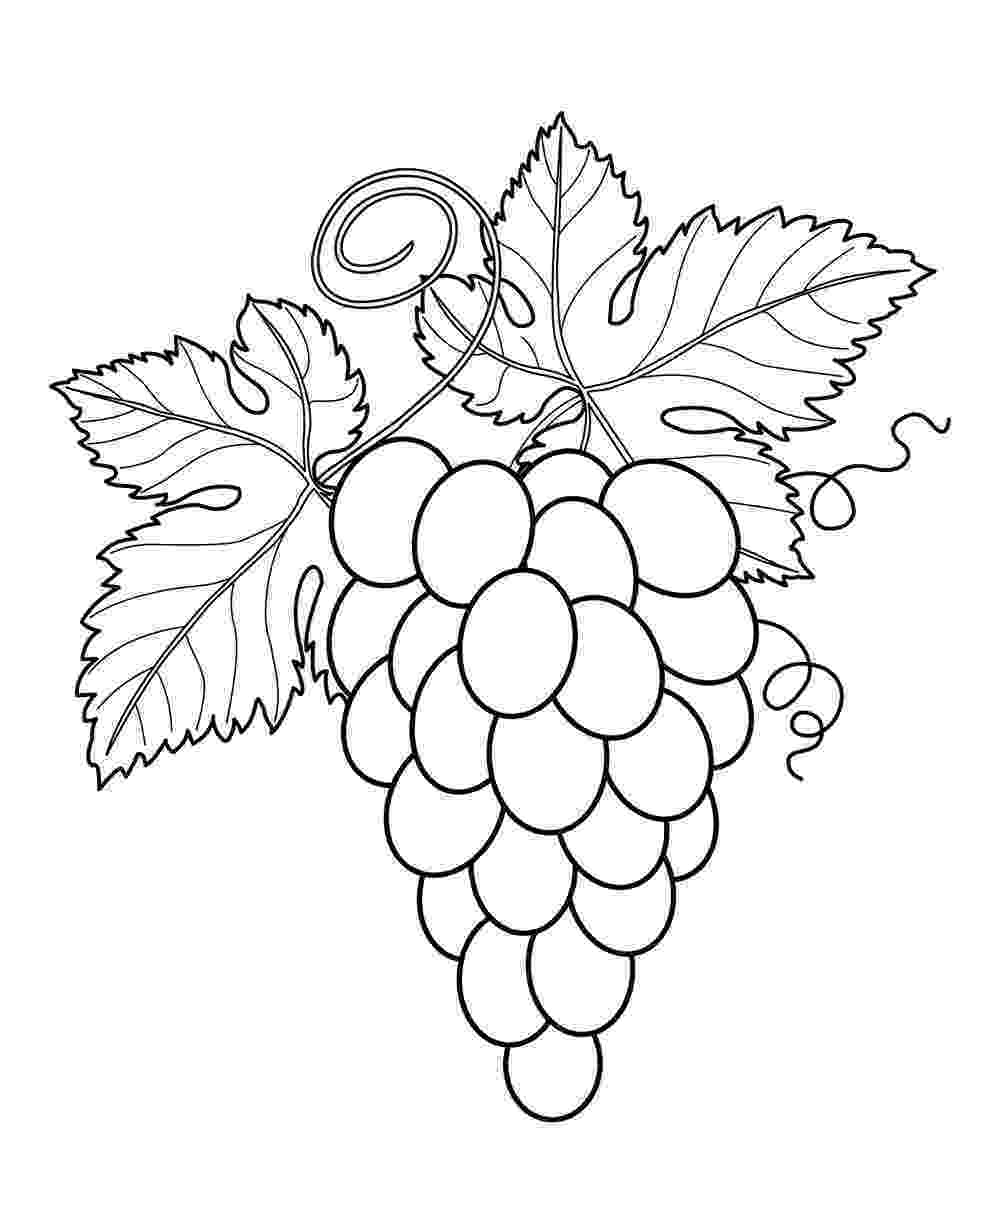 picture of fruits for colouring get this online fruit coloring pages 61145 colouring picture fruits for of